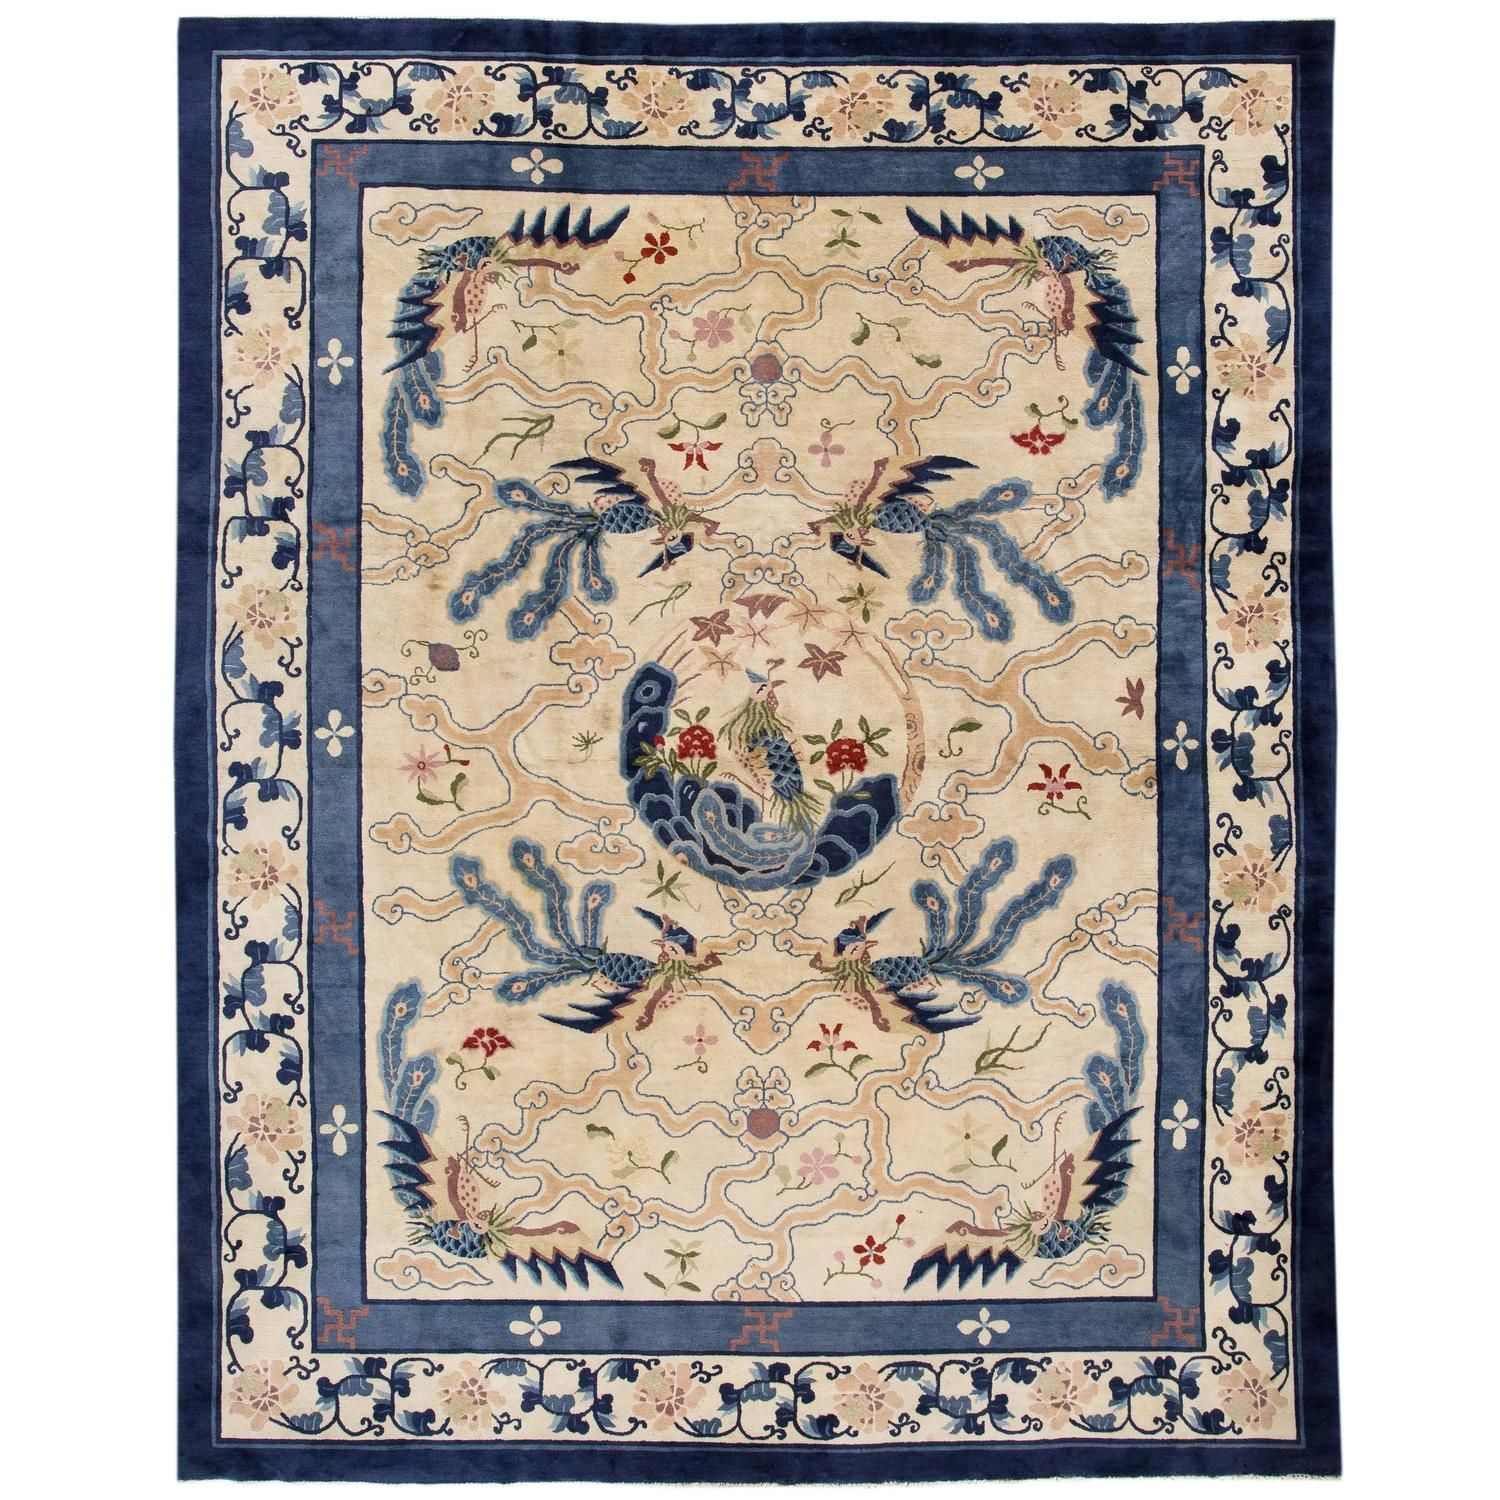 Antique Chinese Art Deco Asian Rugs Art Deco And Modern